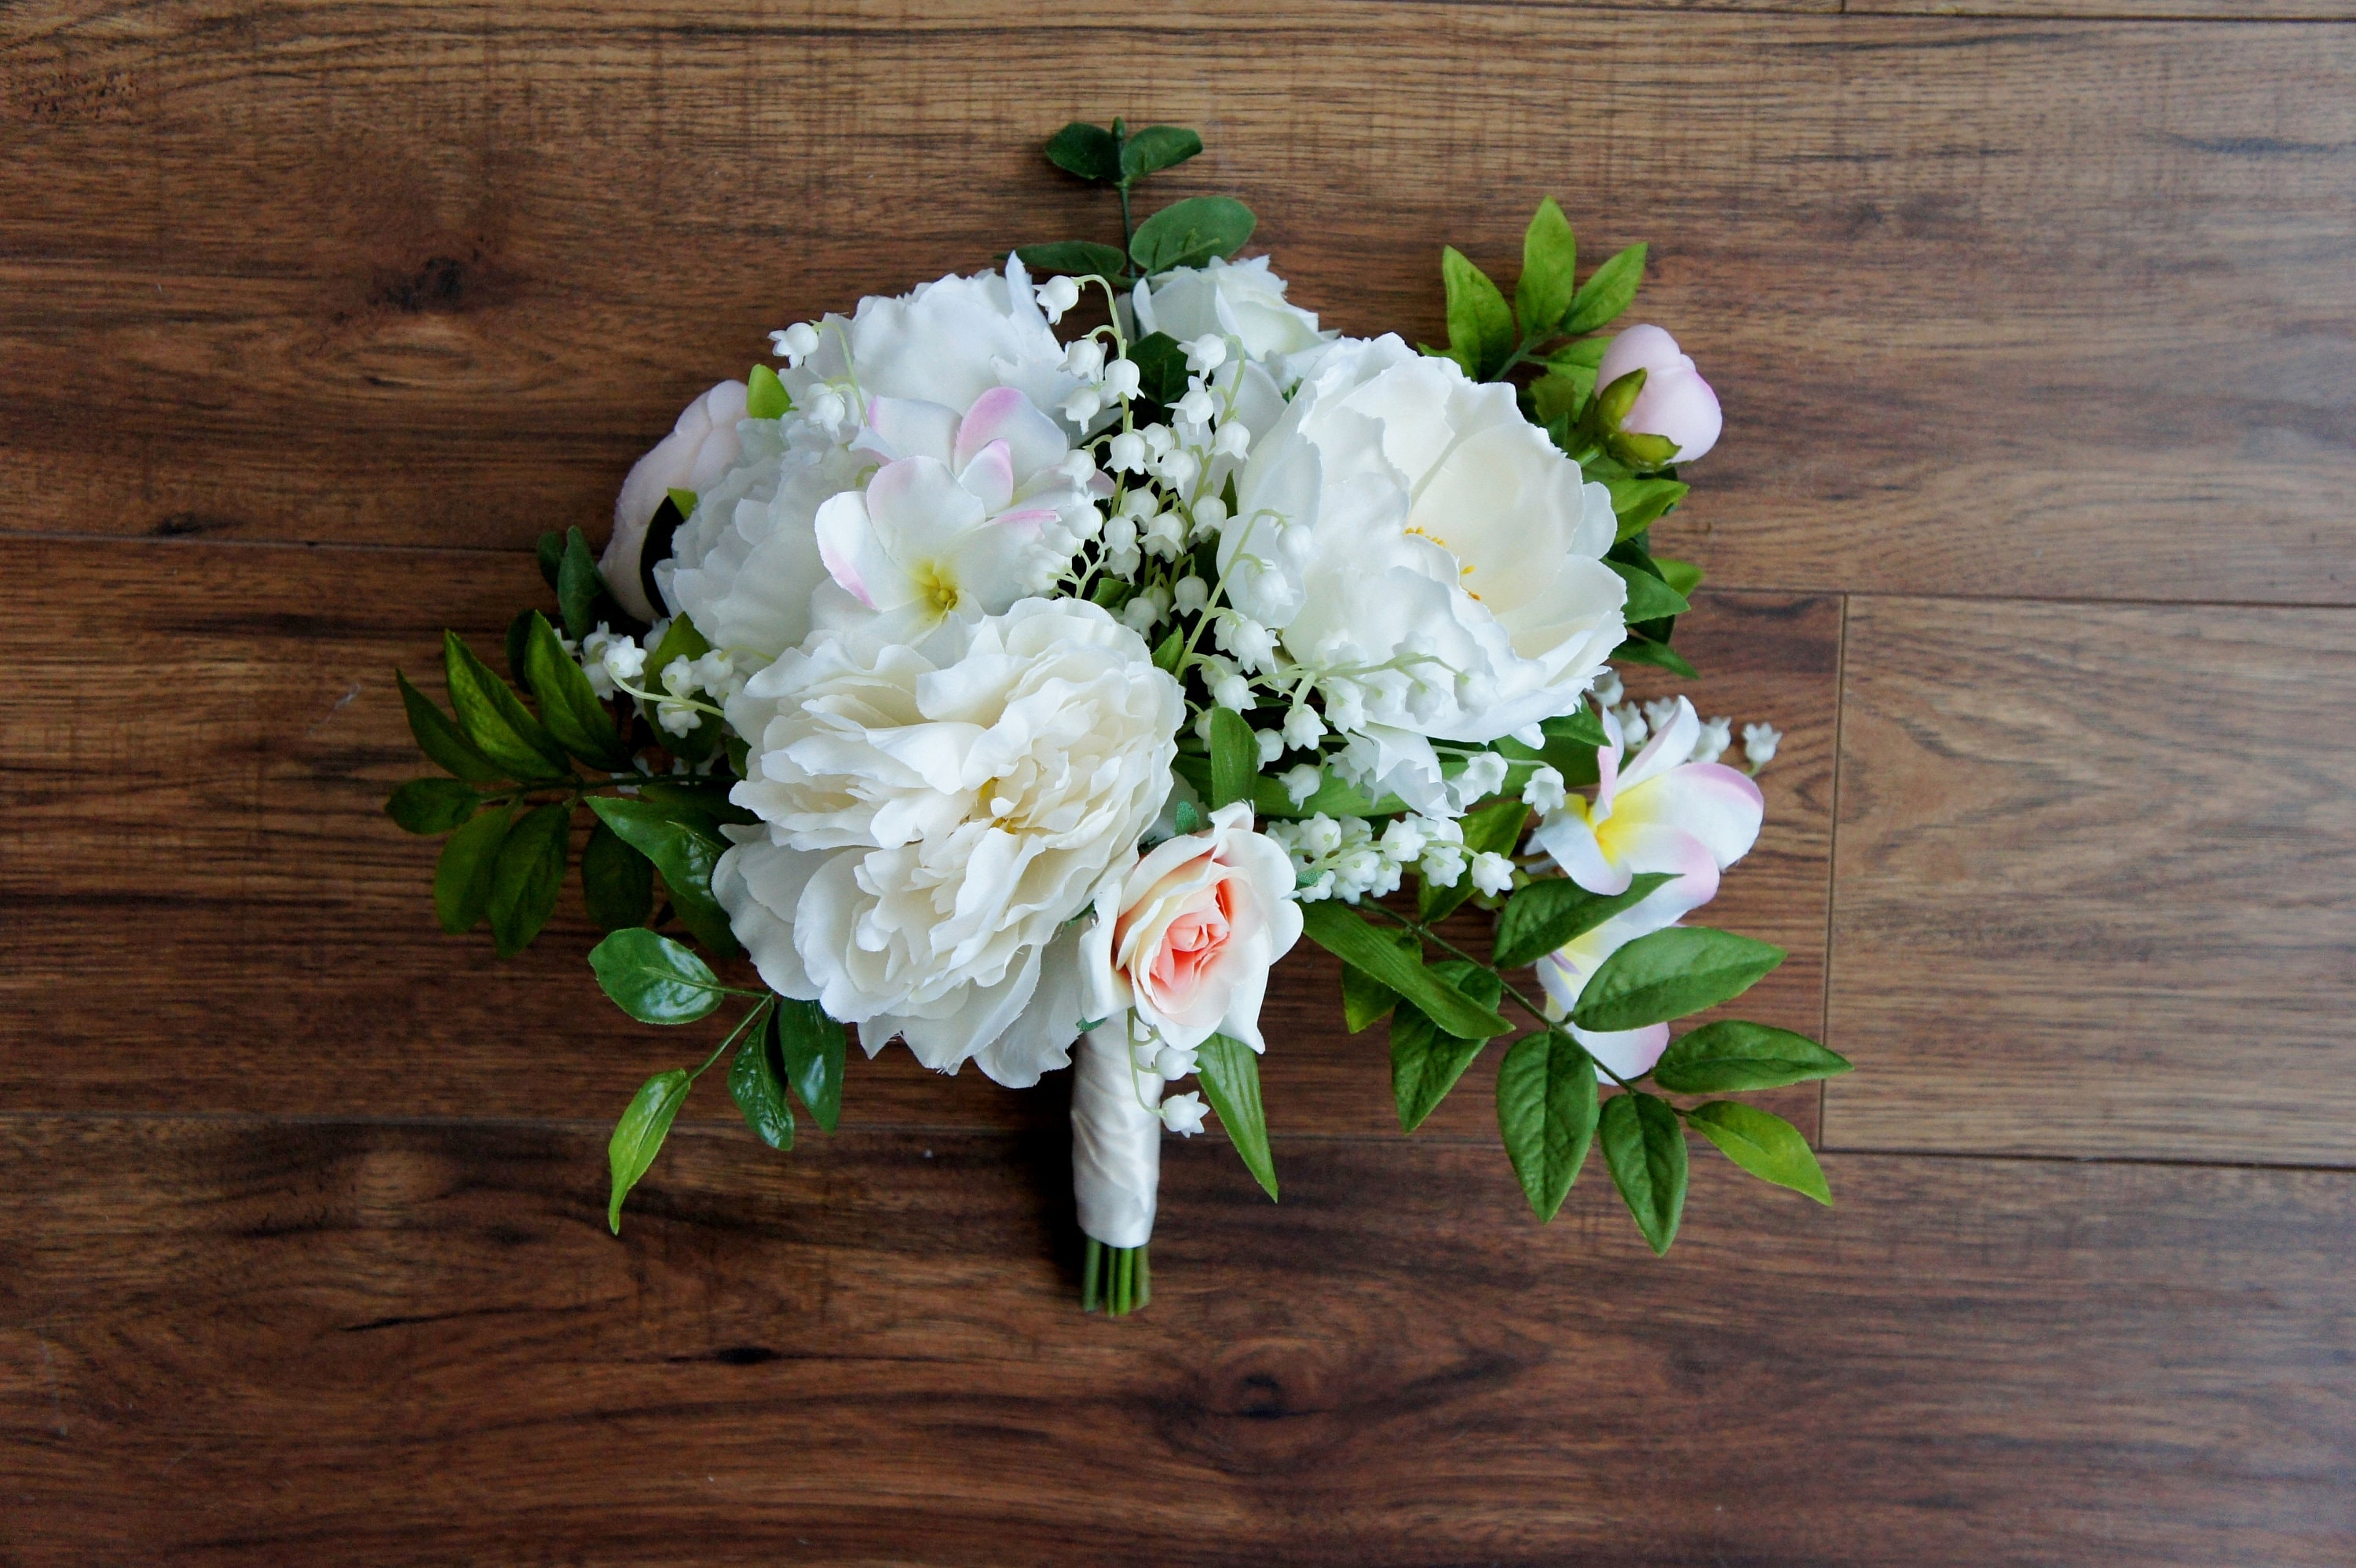 Lily Of The Valley Wedding Bouquet: Lily Of The Valley Bouquet Boho Wedding Bouquet Peony